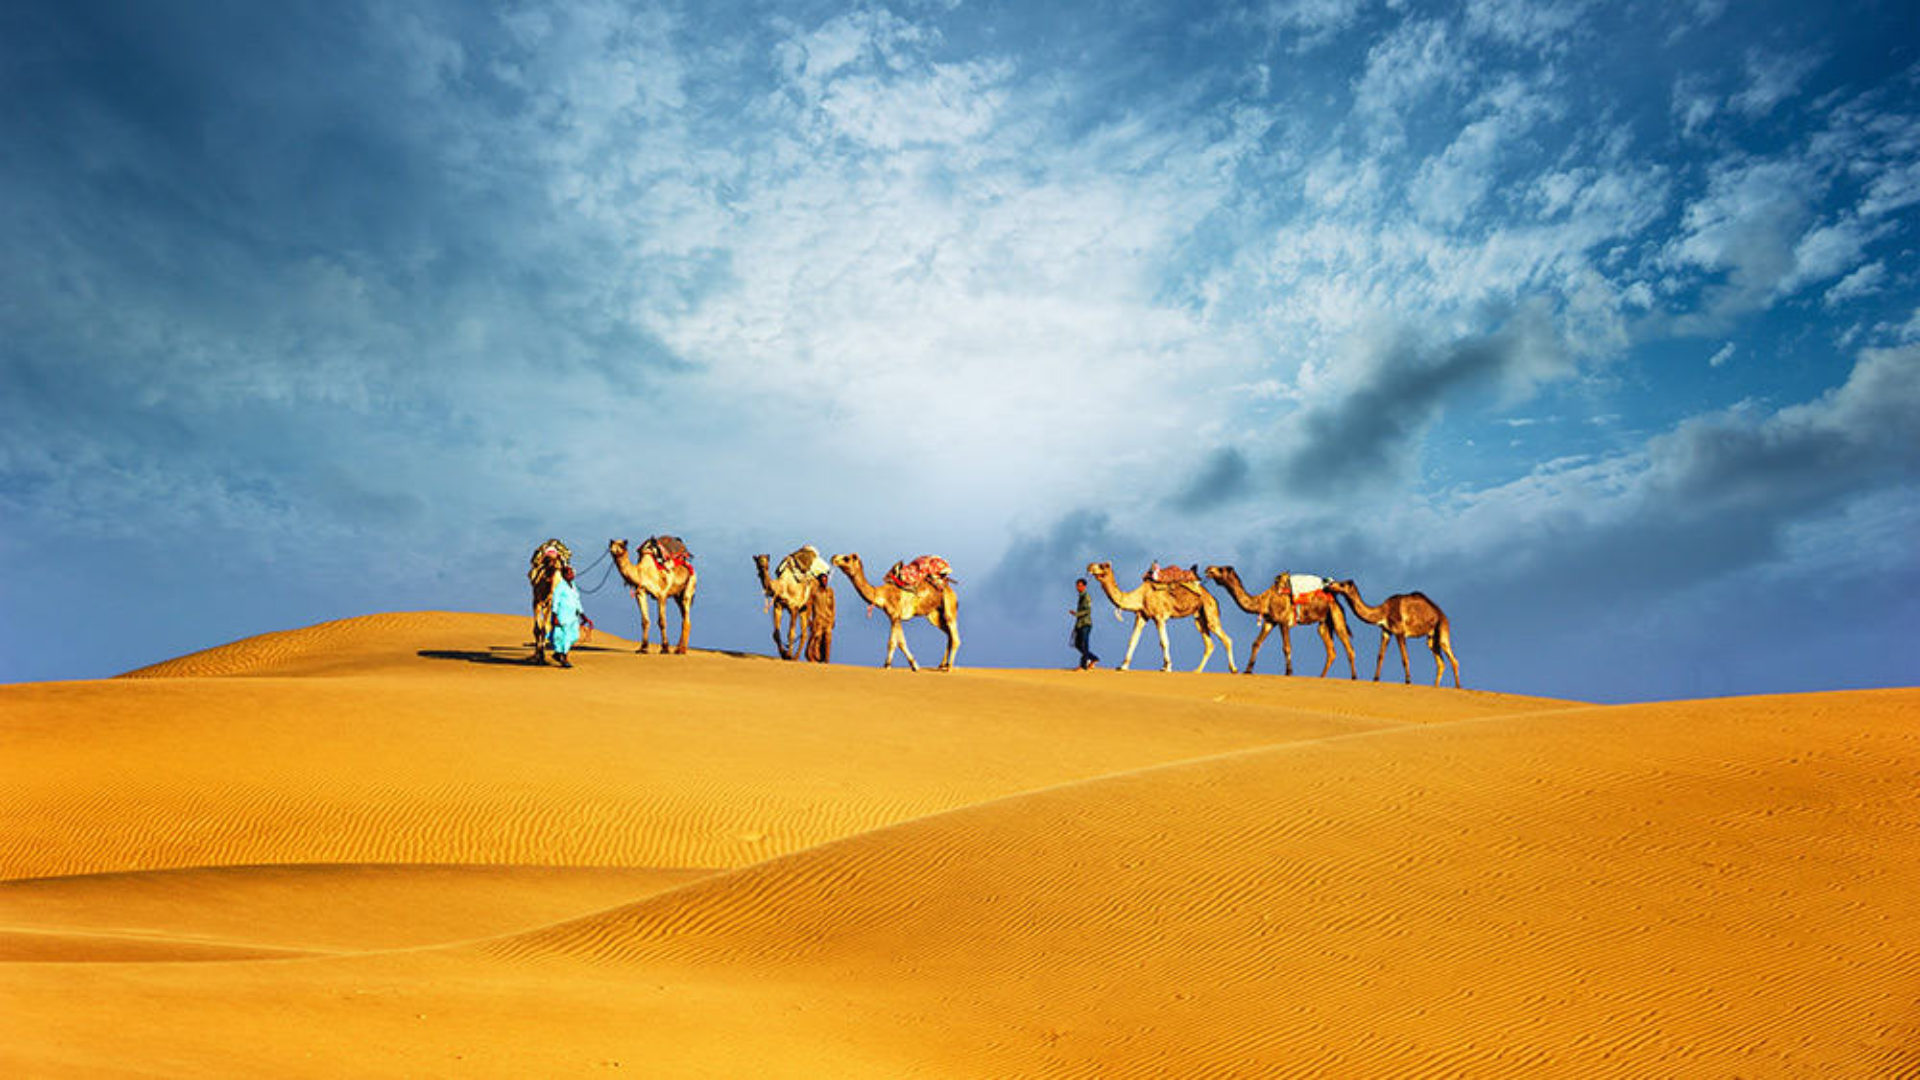 Camels in the desert on a Mauritius & Dubai twin-centre